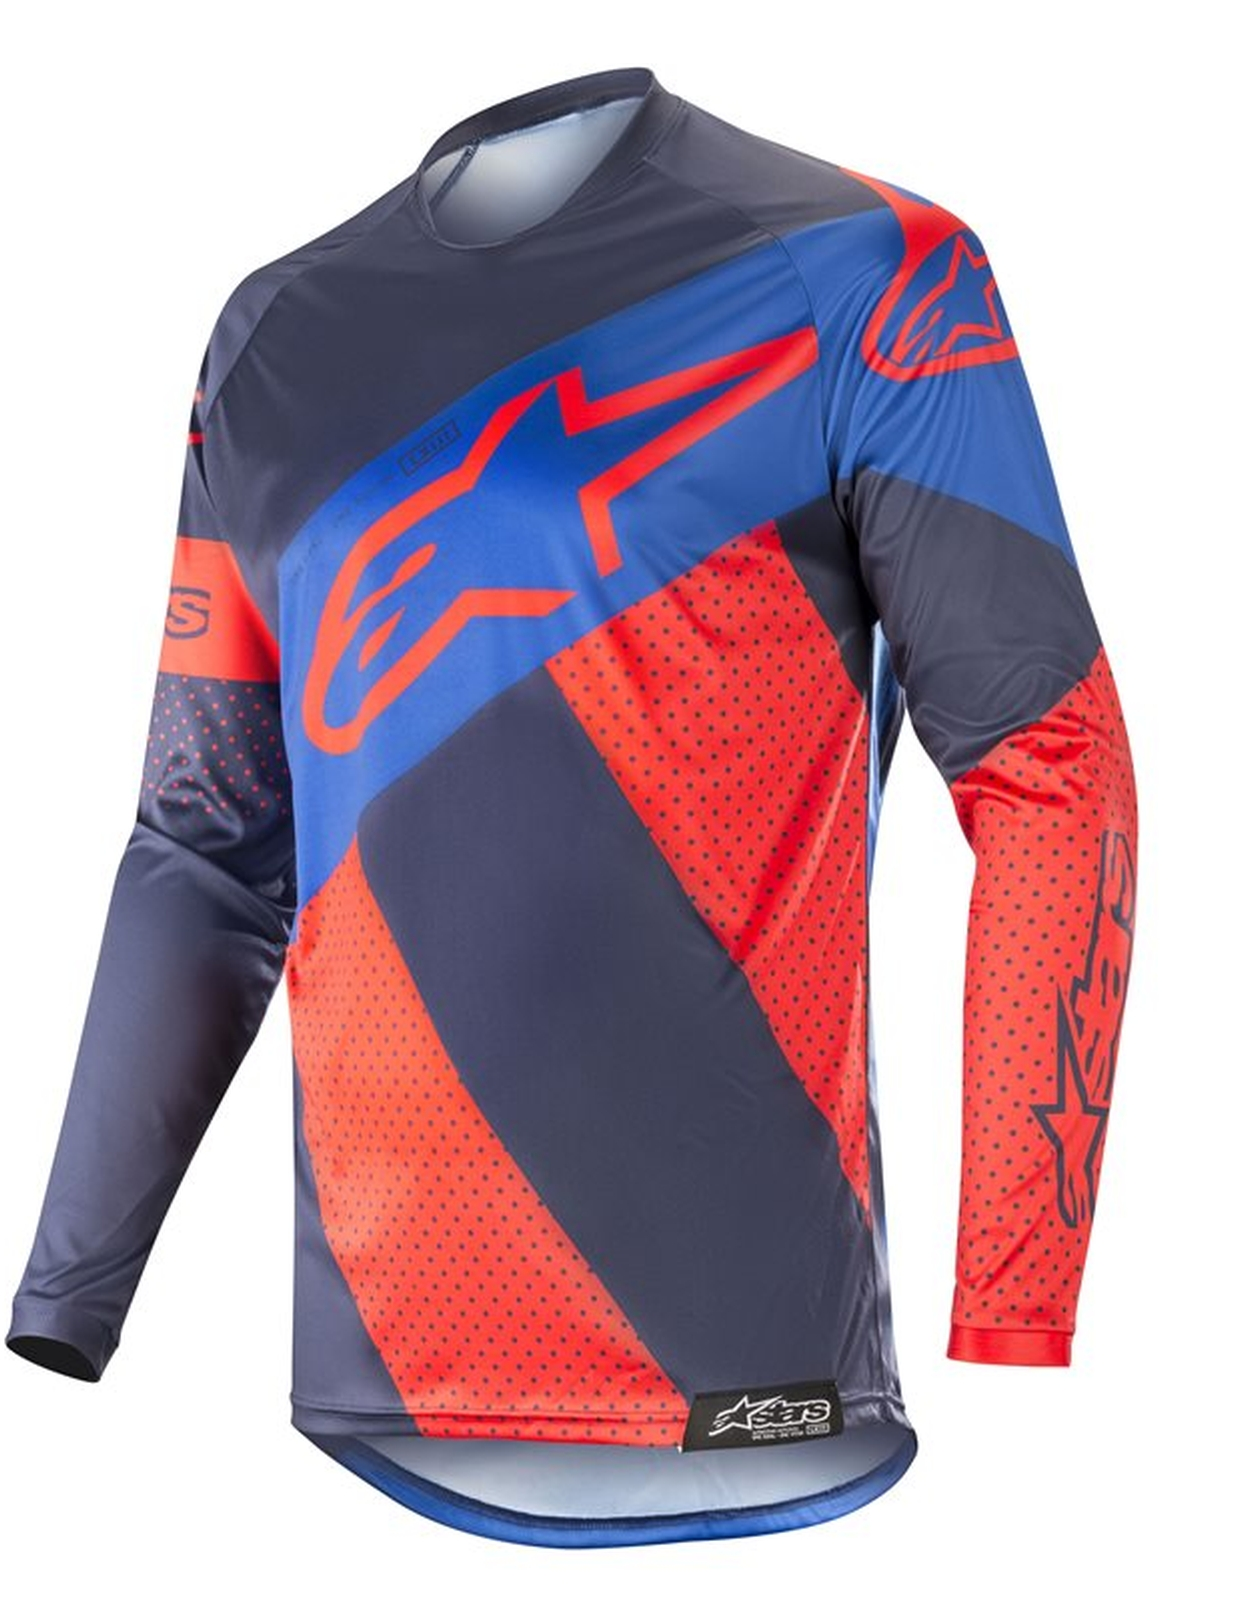 RACER TECH ATOMIC JERSEY